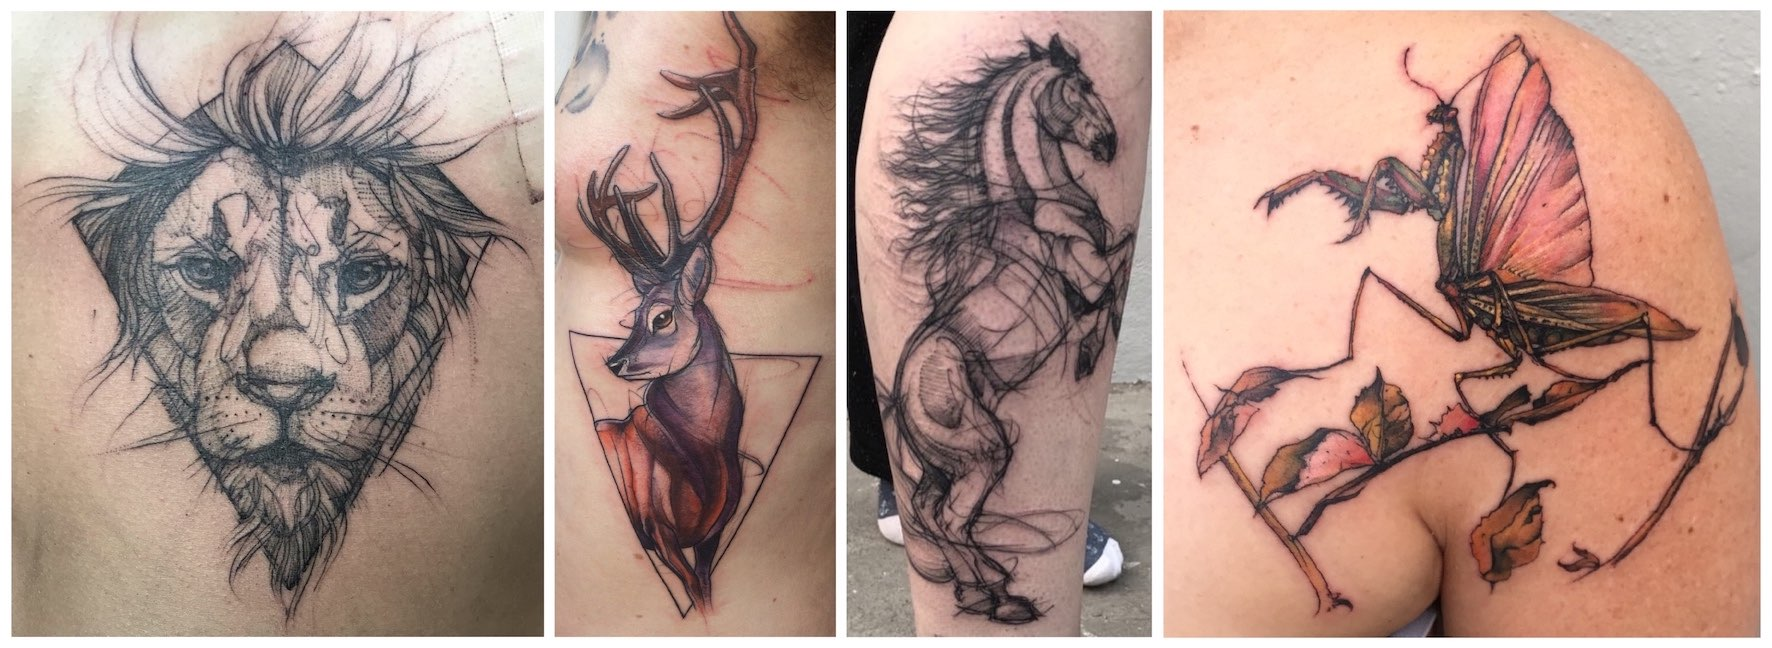 A selection of arty tattoos done by Lauren Peachfish